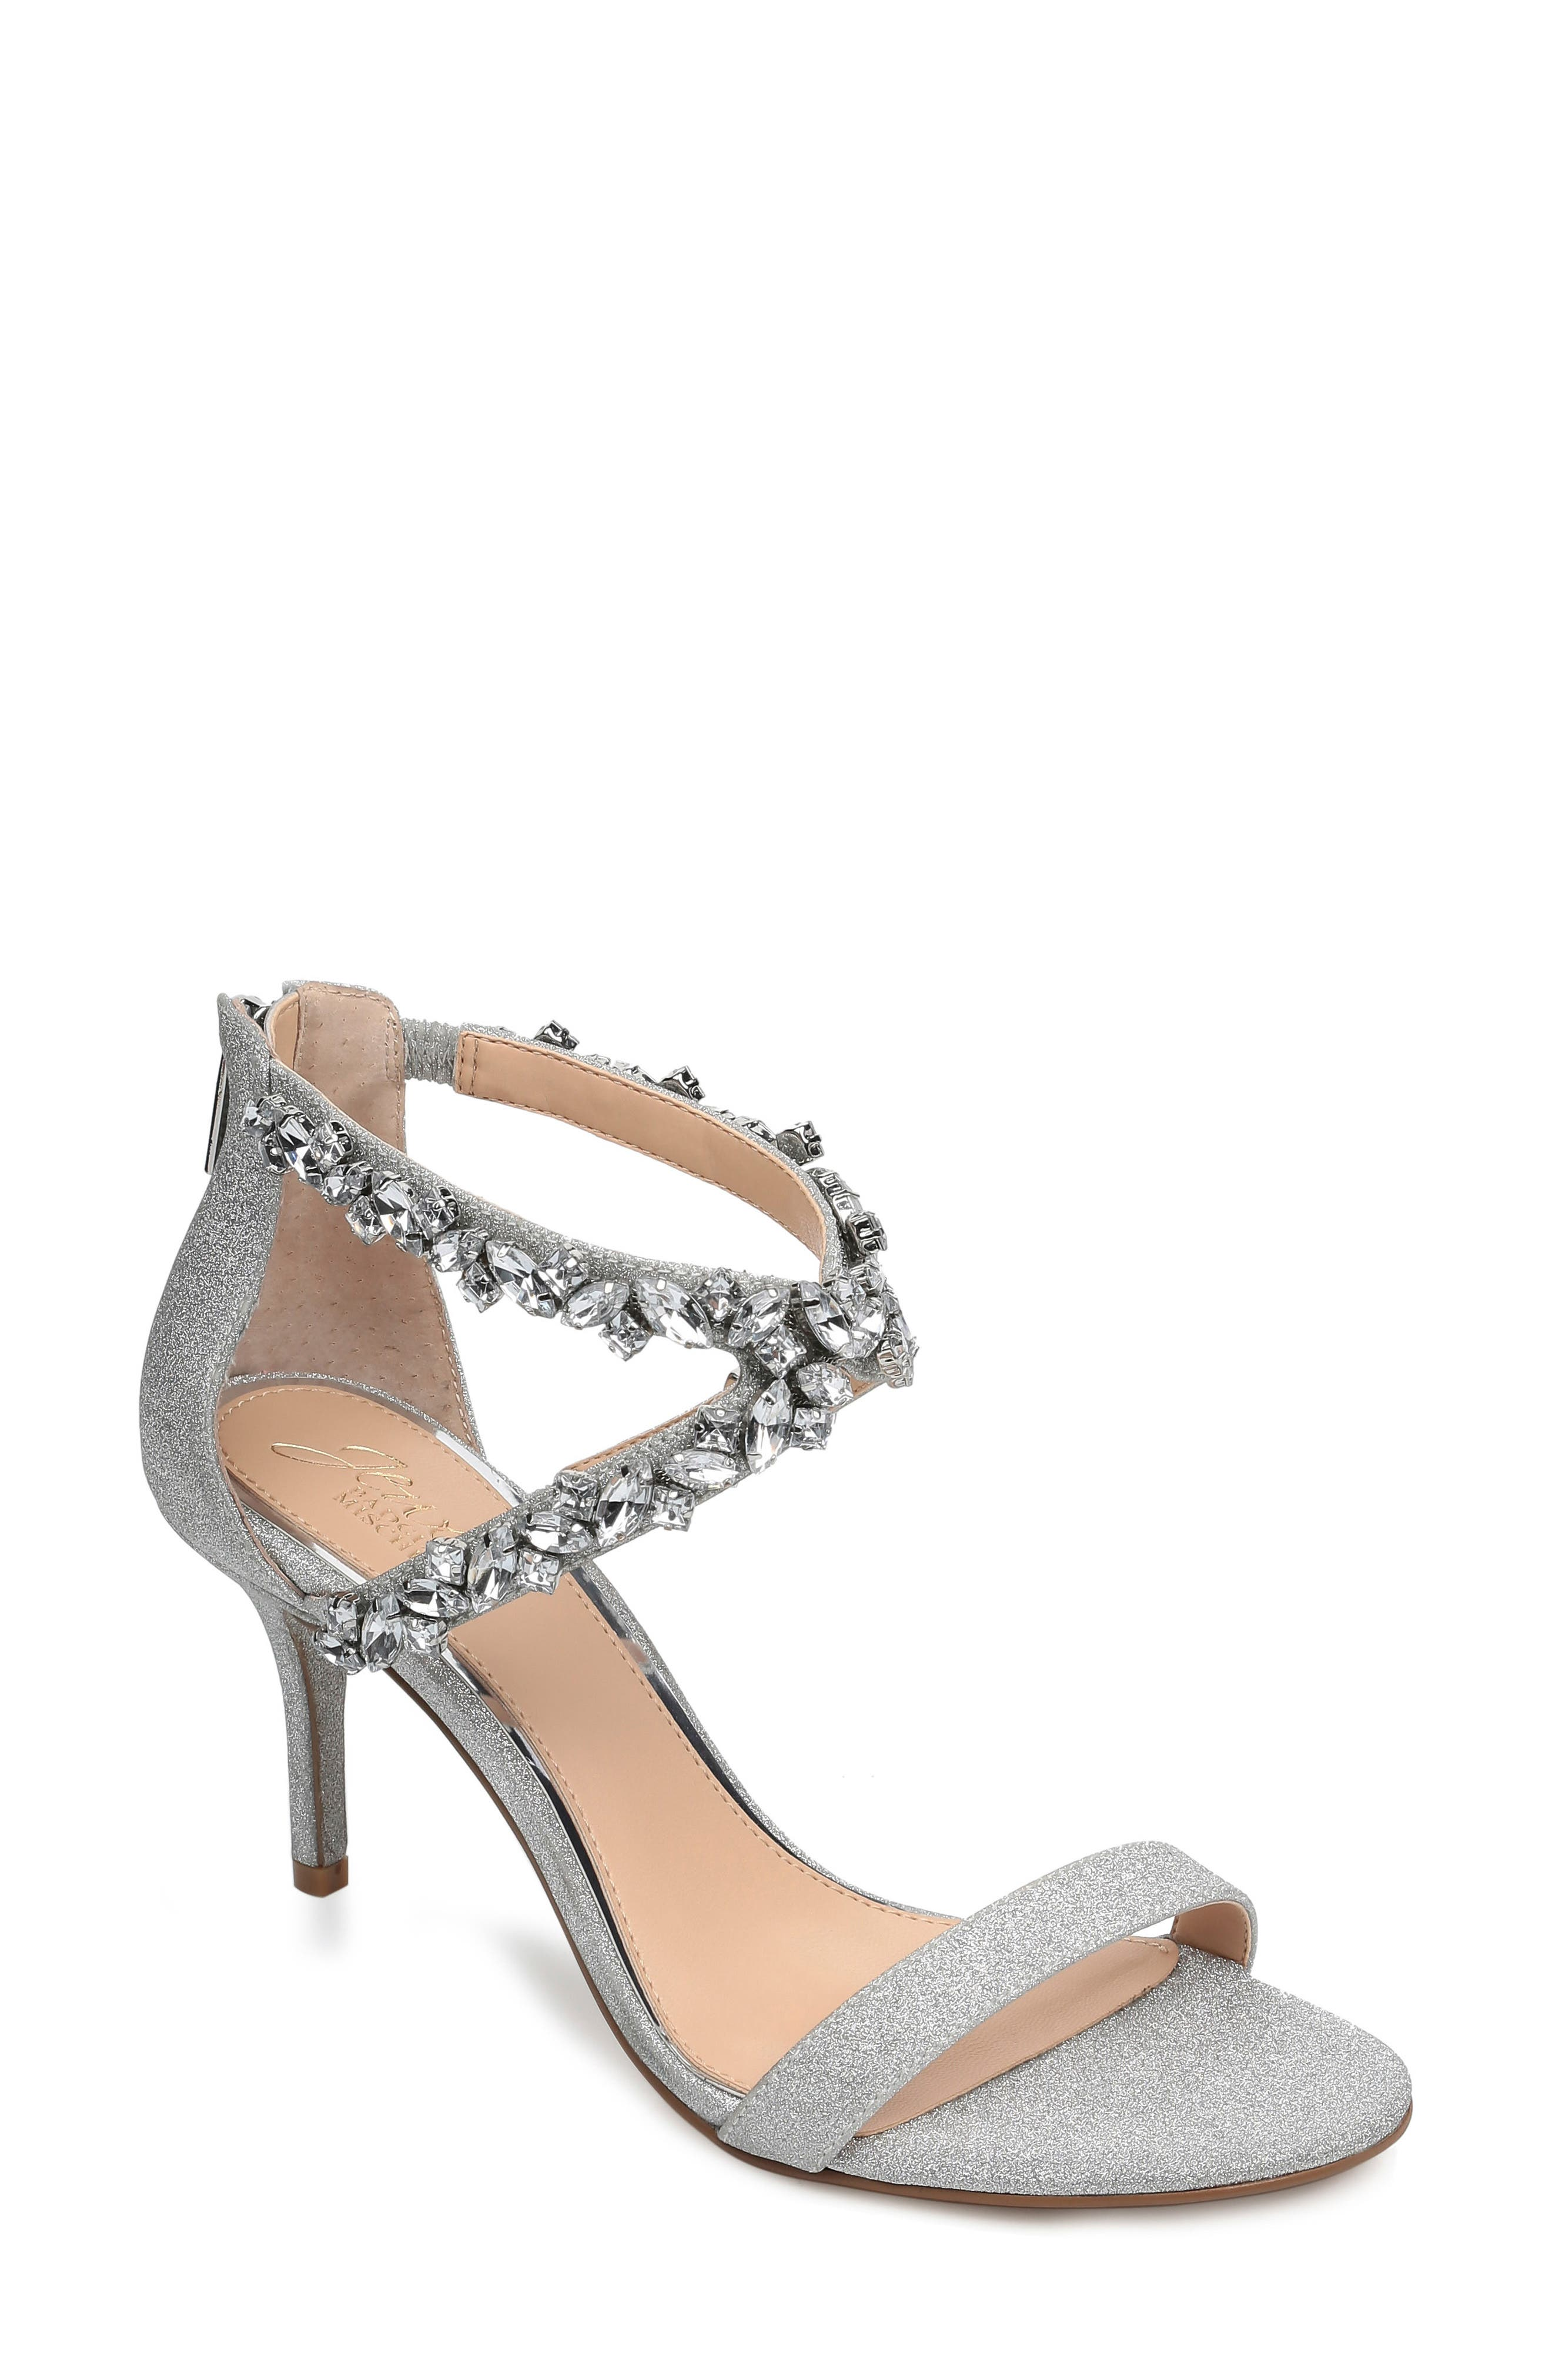 Jaylee Sandal, Main, color, SILVER SATIN